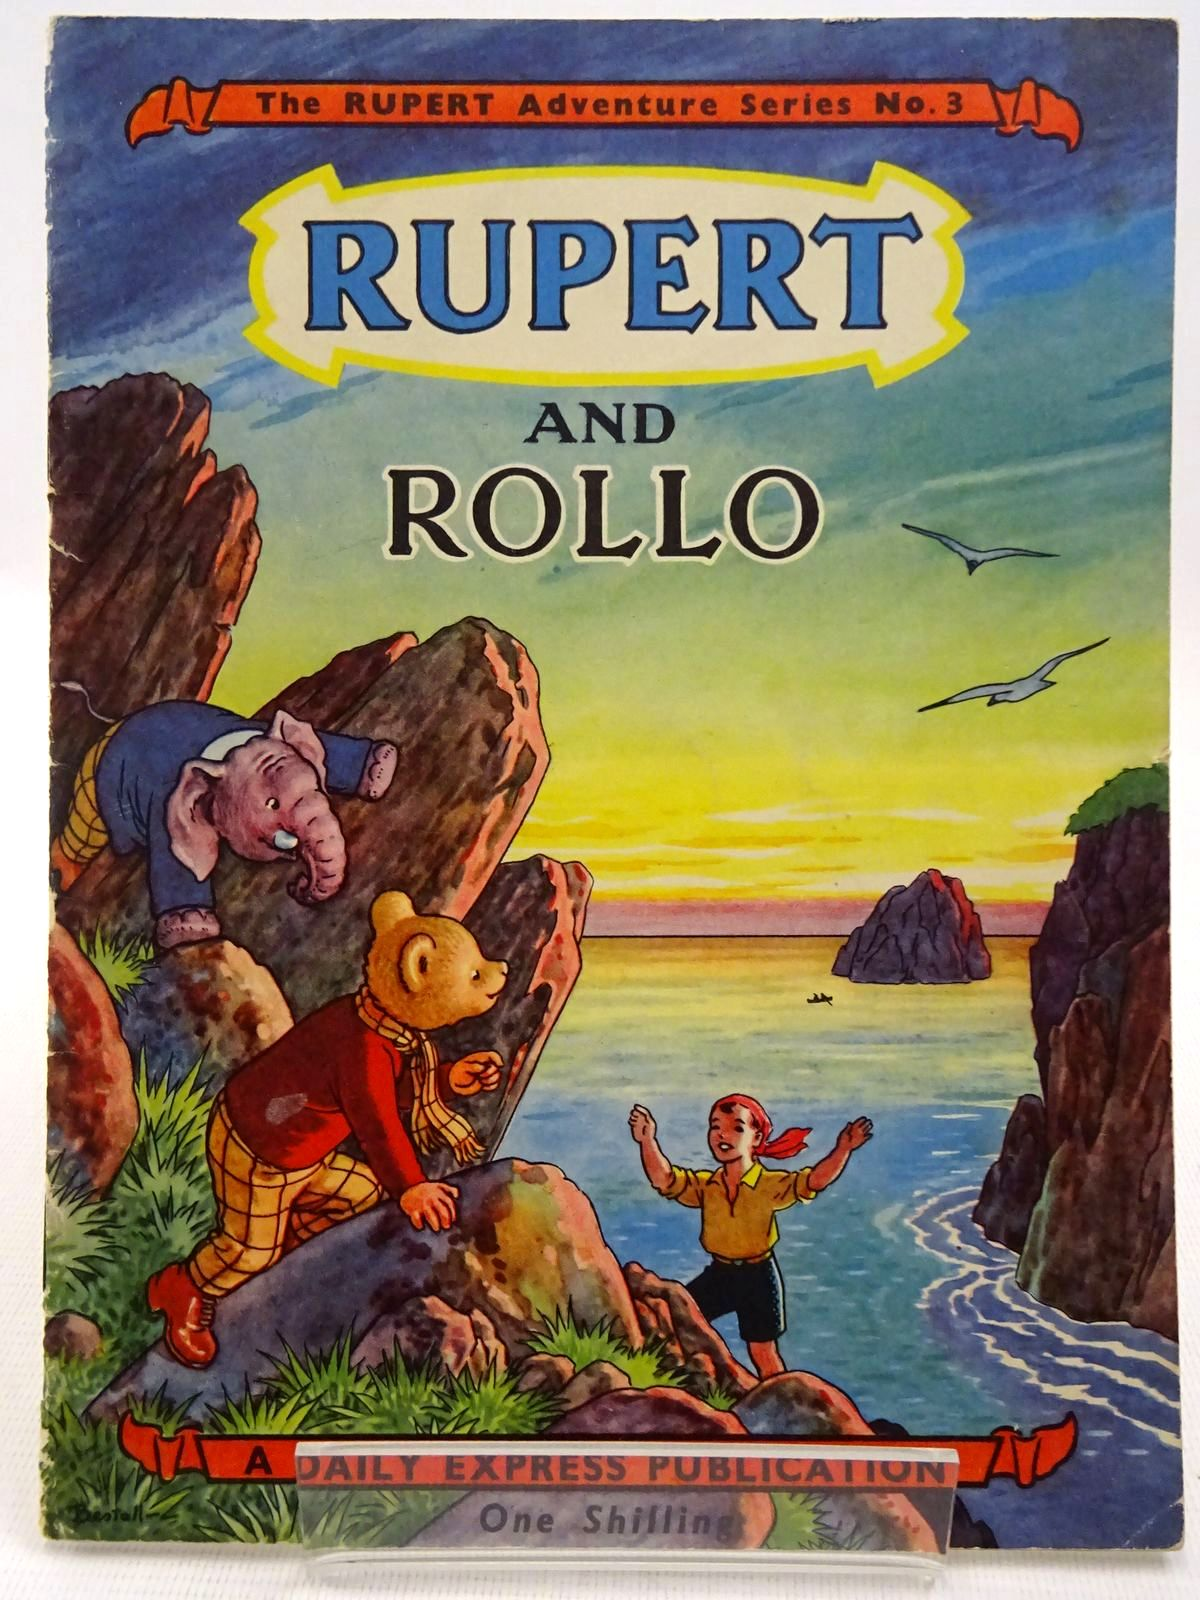 Photo of RUPERT ADVENTURE SERIES No. 3 - RUPERT AND ROLLO written by Bestall, Alfred illustrated by Bestall, Alfred published by Daily Express (STOCK CODE: 2128605)  for sale by Stella & Rose's Books